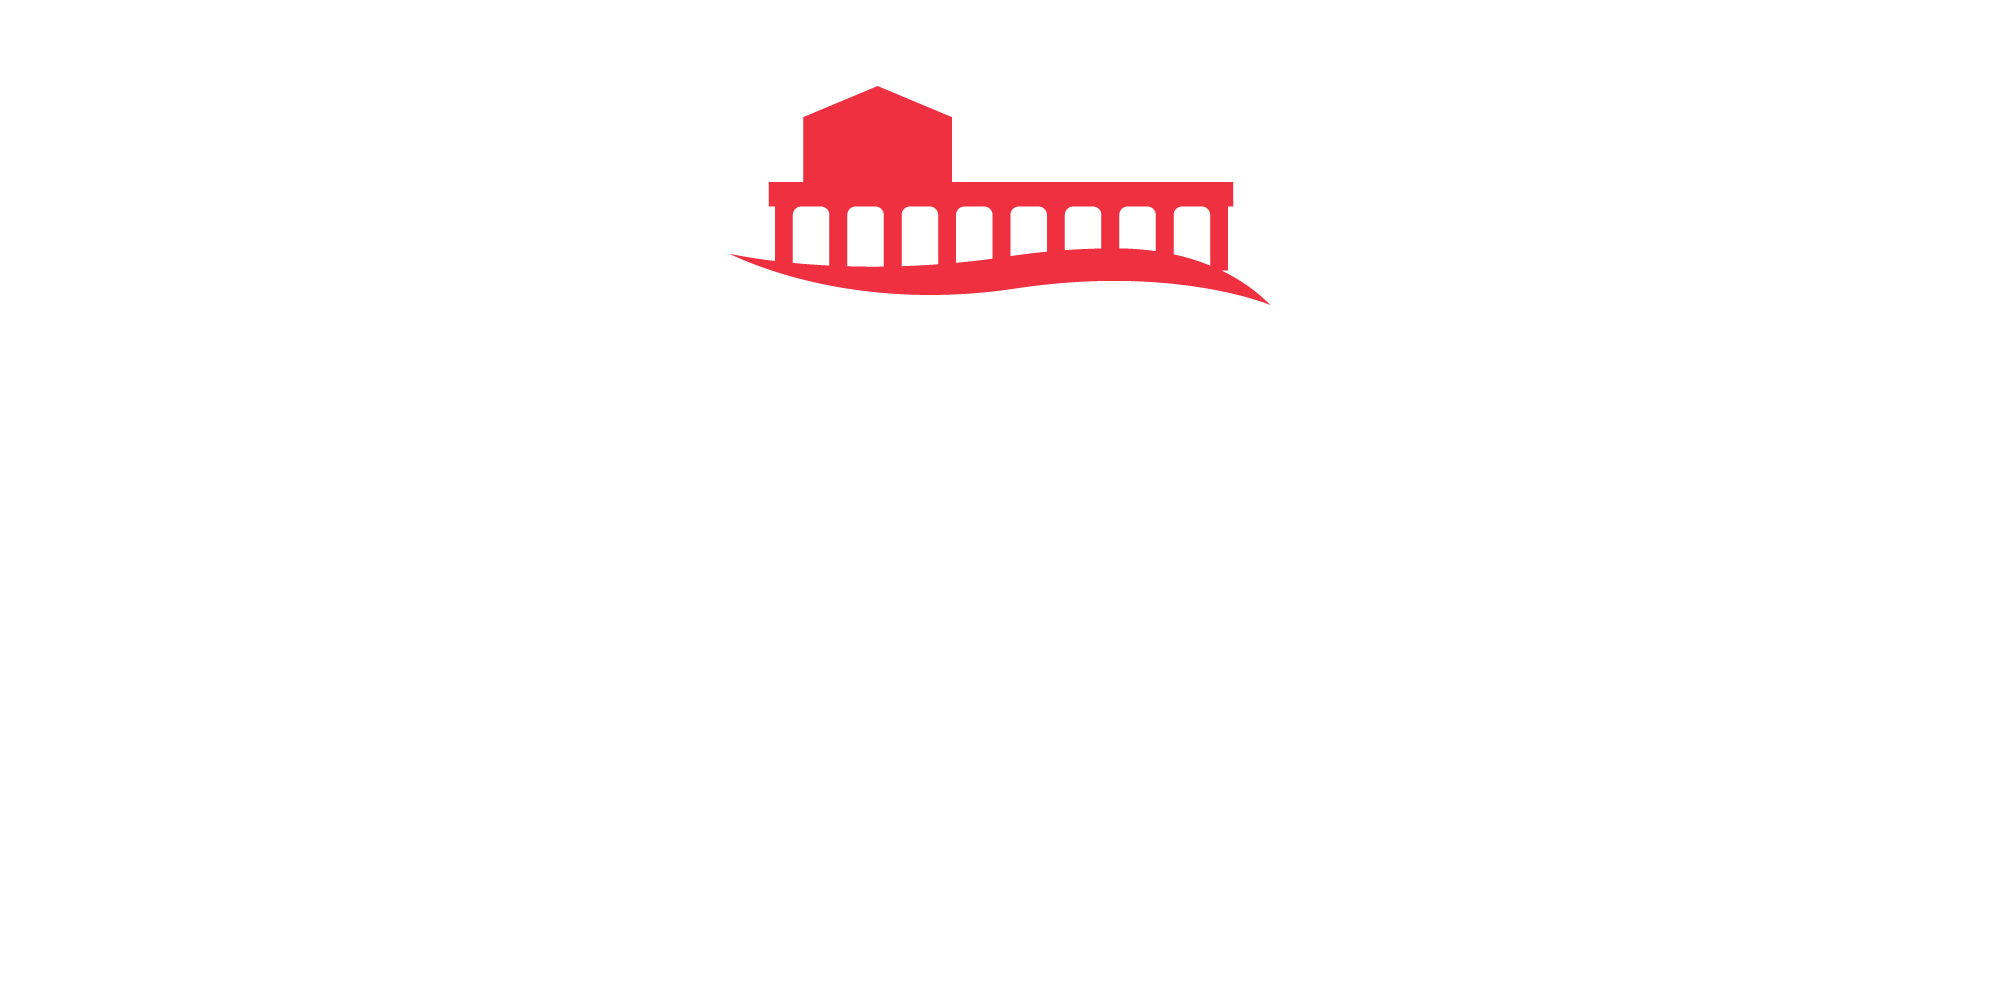 The Harrison Greenberg Foundation Roundhouse Beautification Project